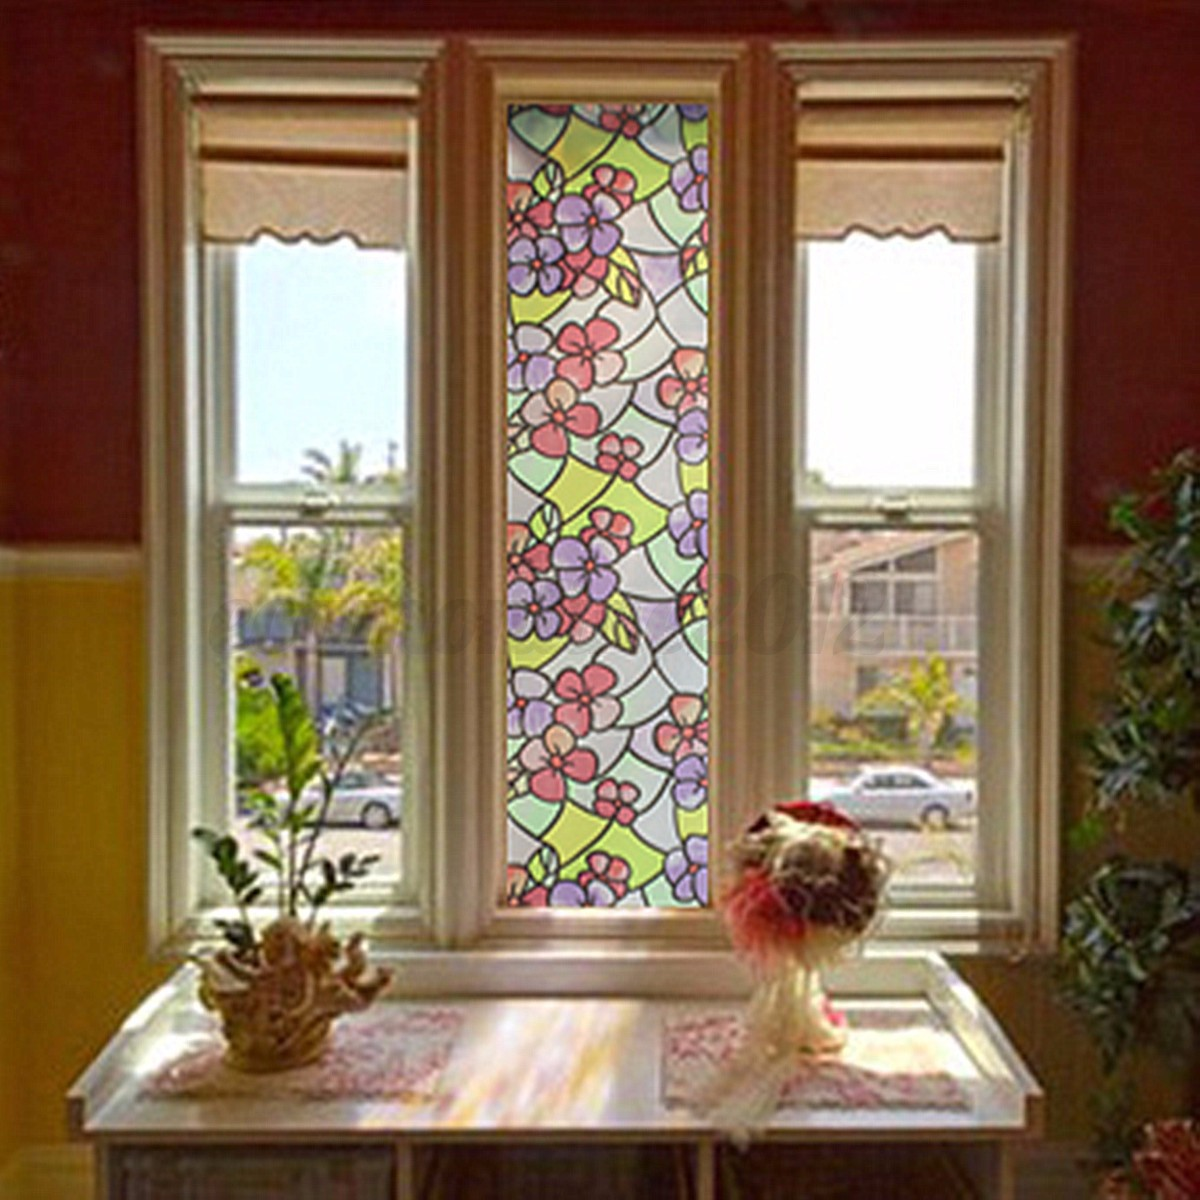 Pvc flowers frosted stained glass window film sticker self for Home window glass